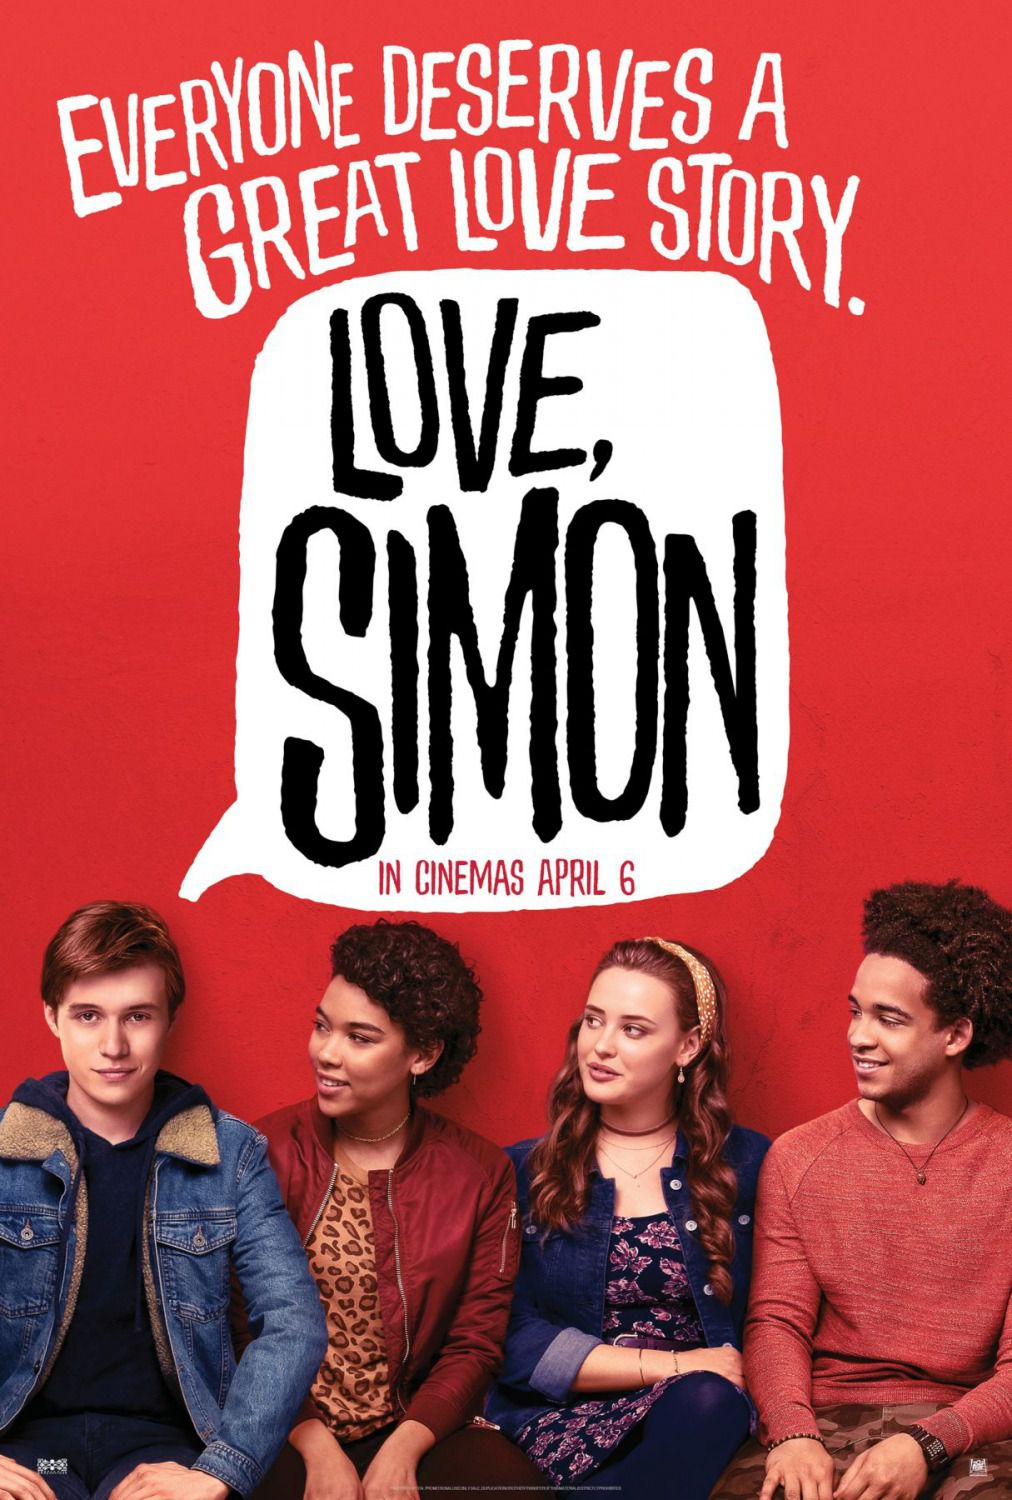 Love Simon by Greg Berlanti - Nick Robinson - film poster 2018